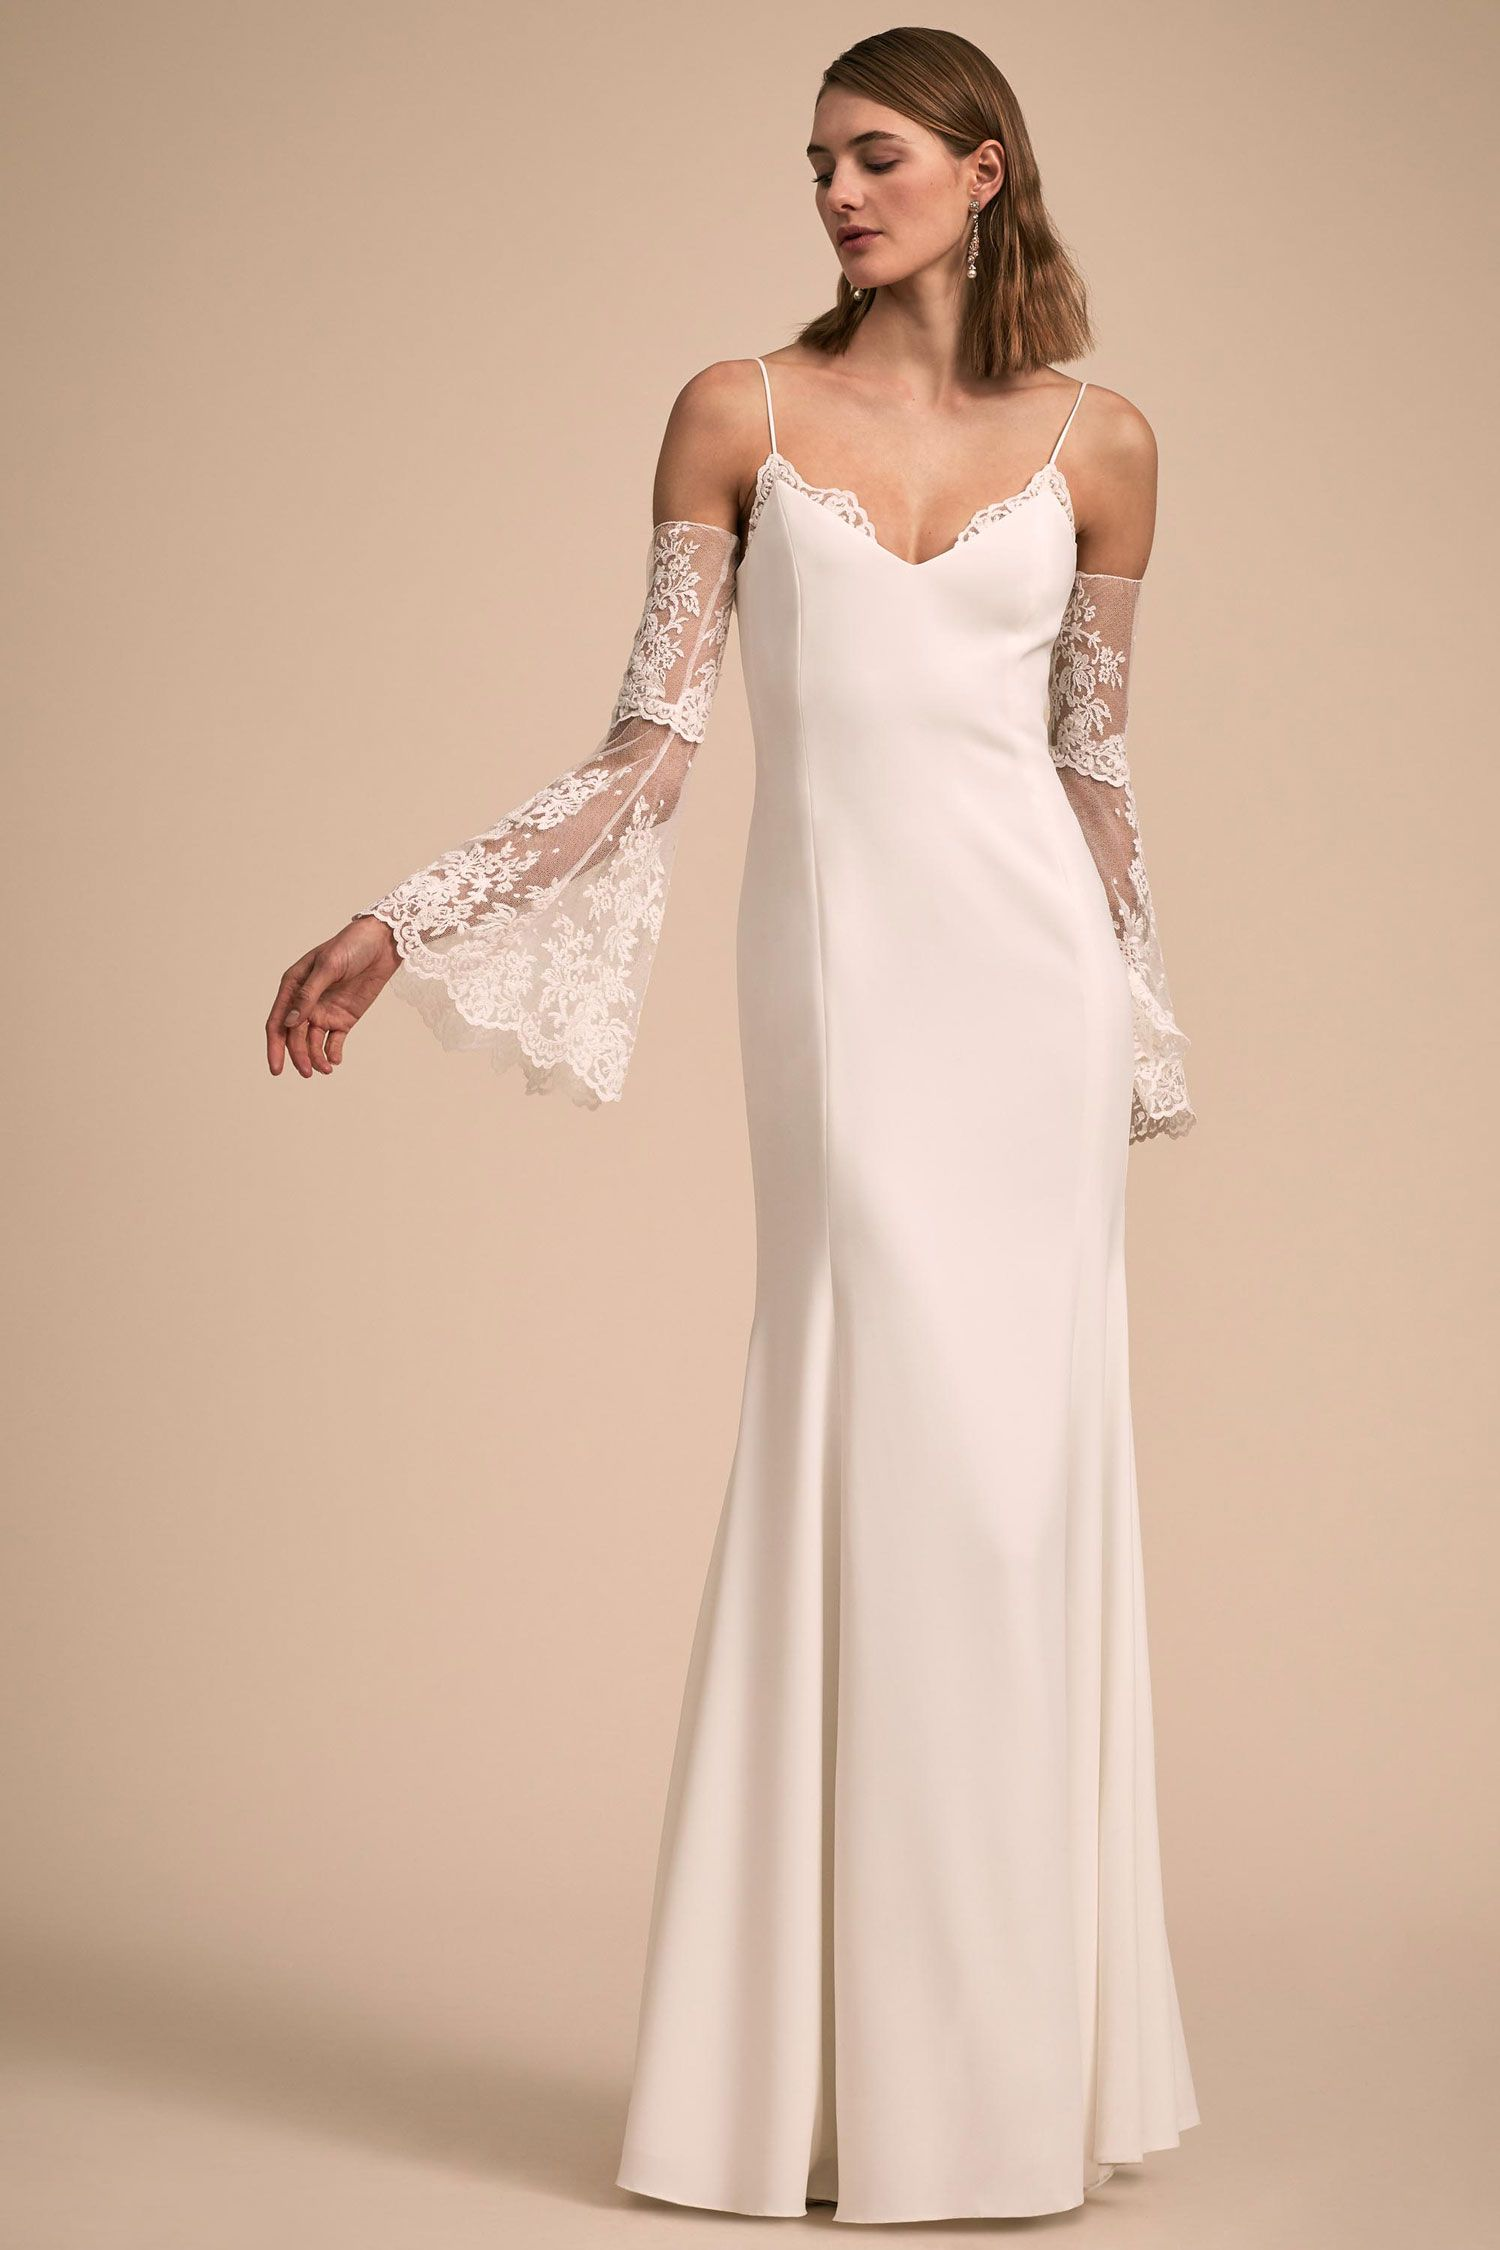 Shop Chic Bridal Gowns From The Designer Collective By Bhldn